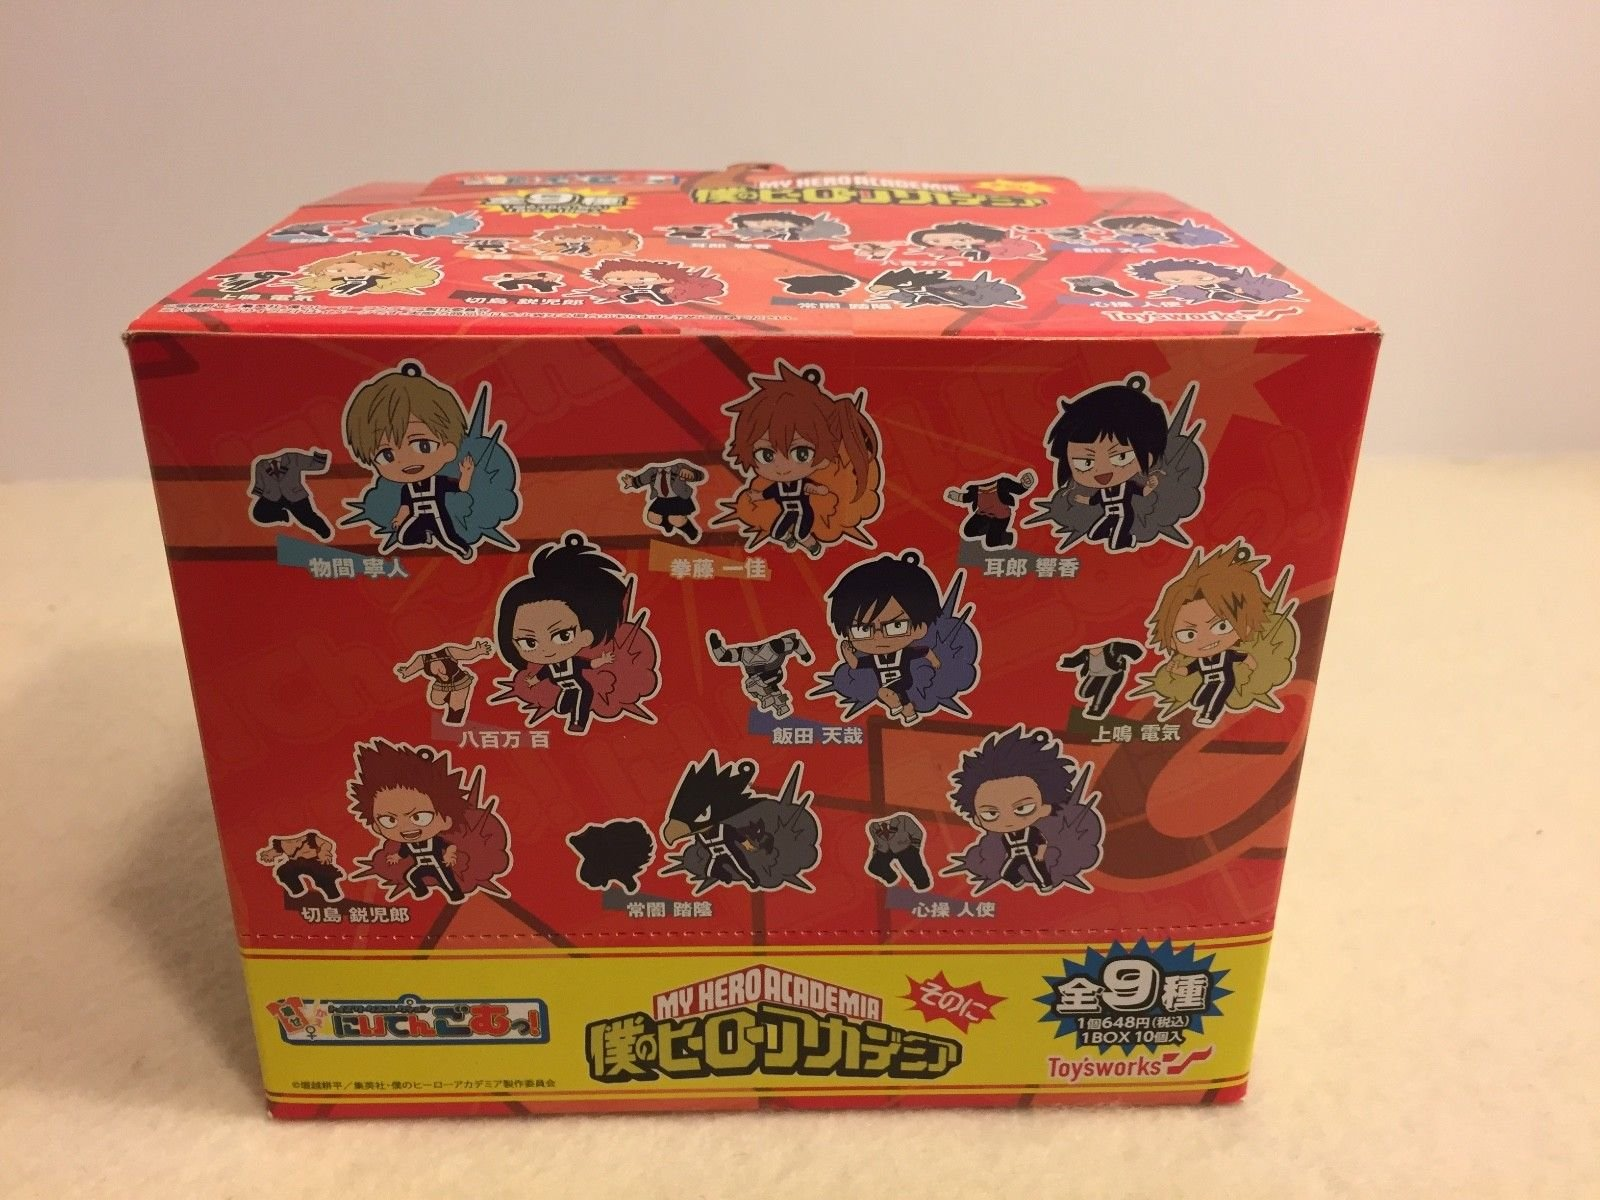 My Hero Academia series 2 rubber strap cell phone charm / NEW box of 10